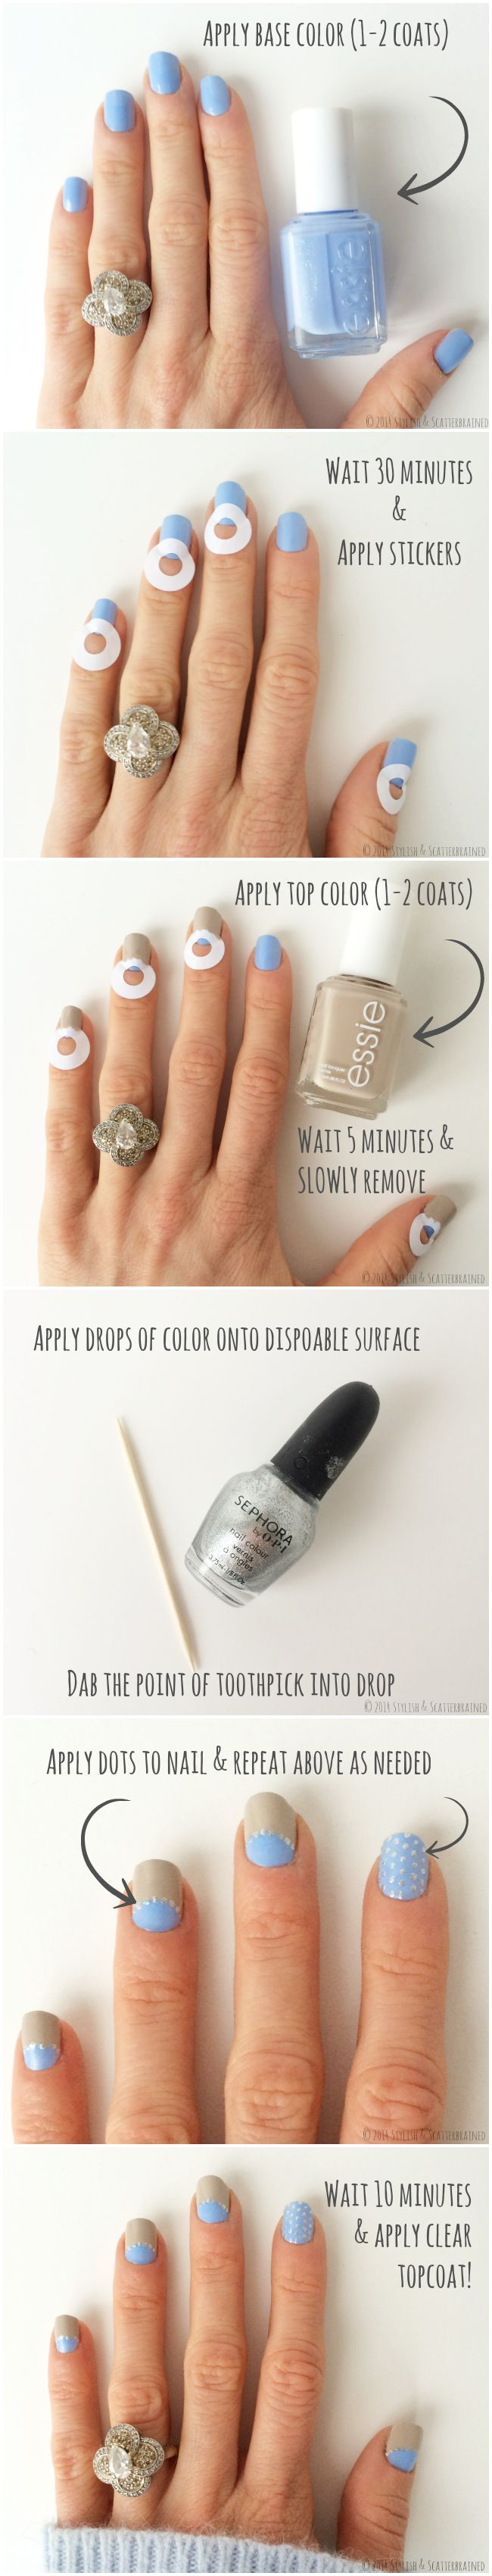 DIY nail art tutorial, don't like the color combo but the pattern is cute!